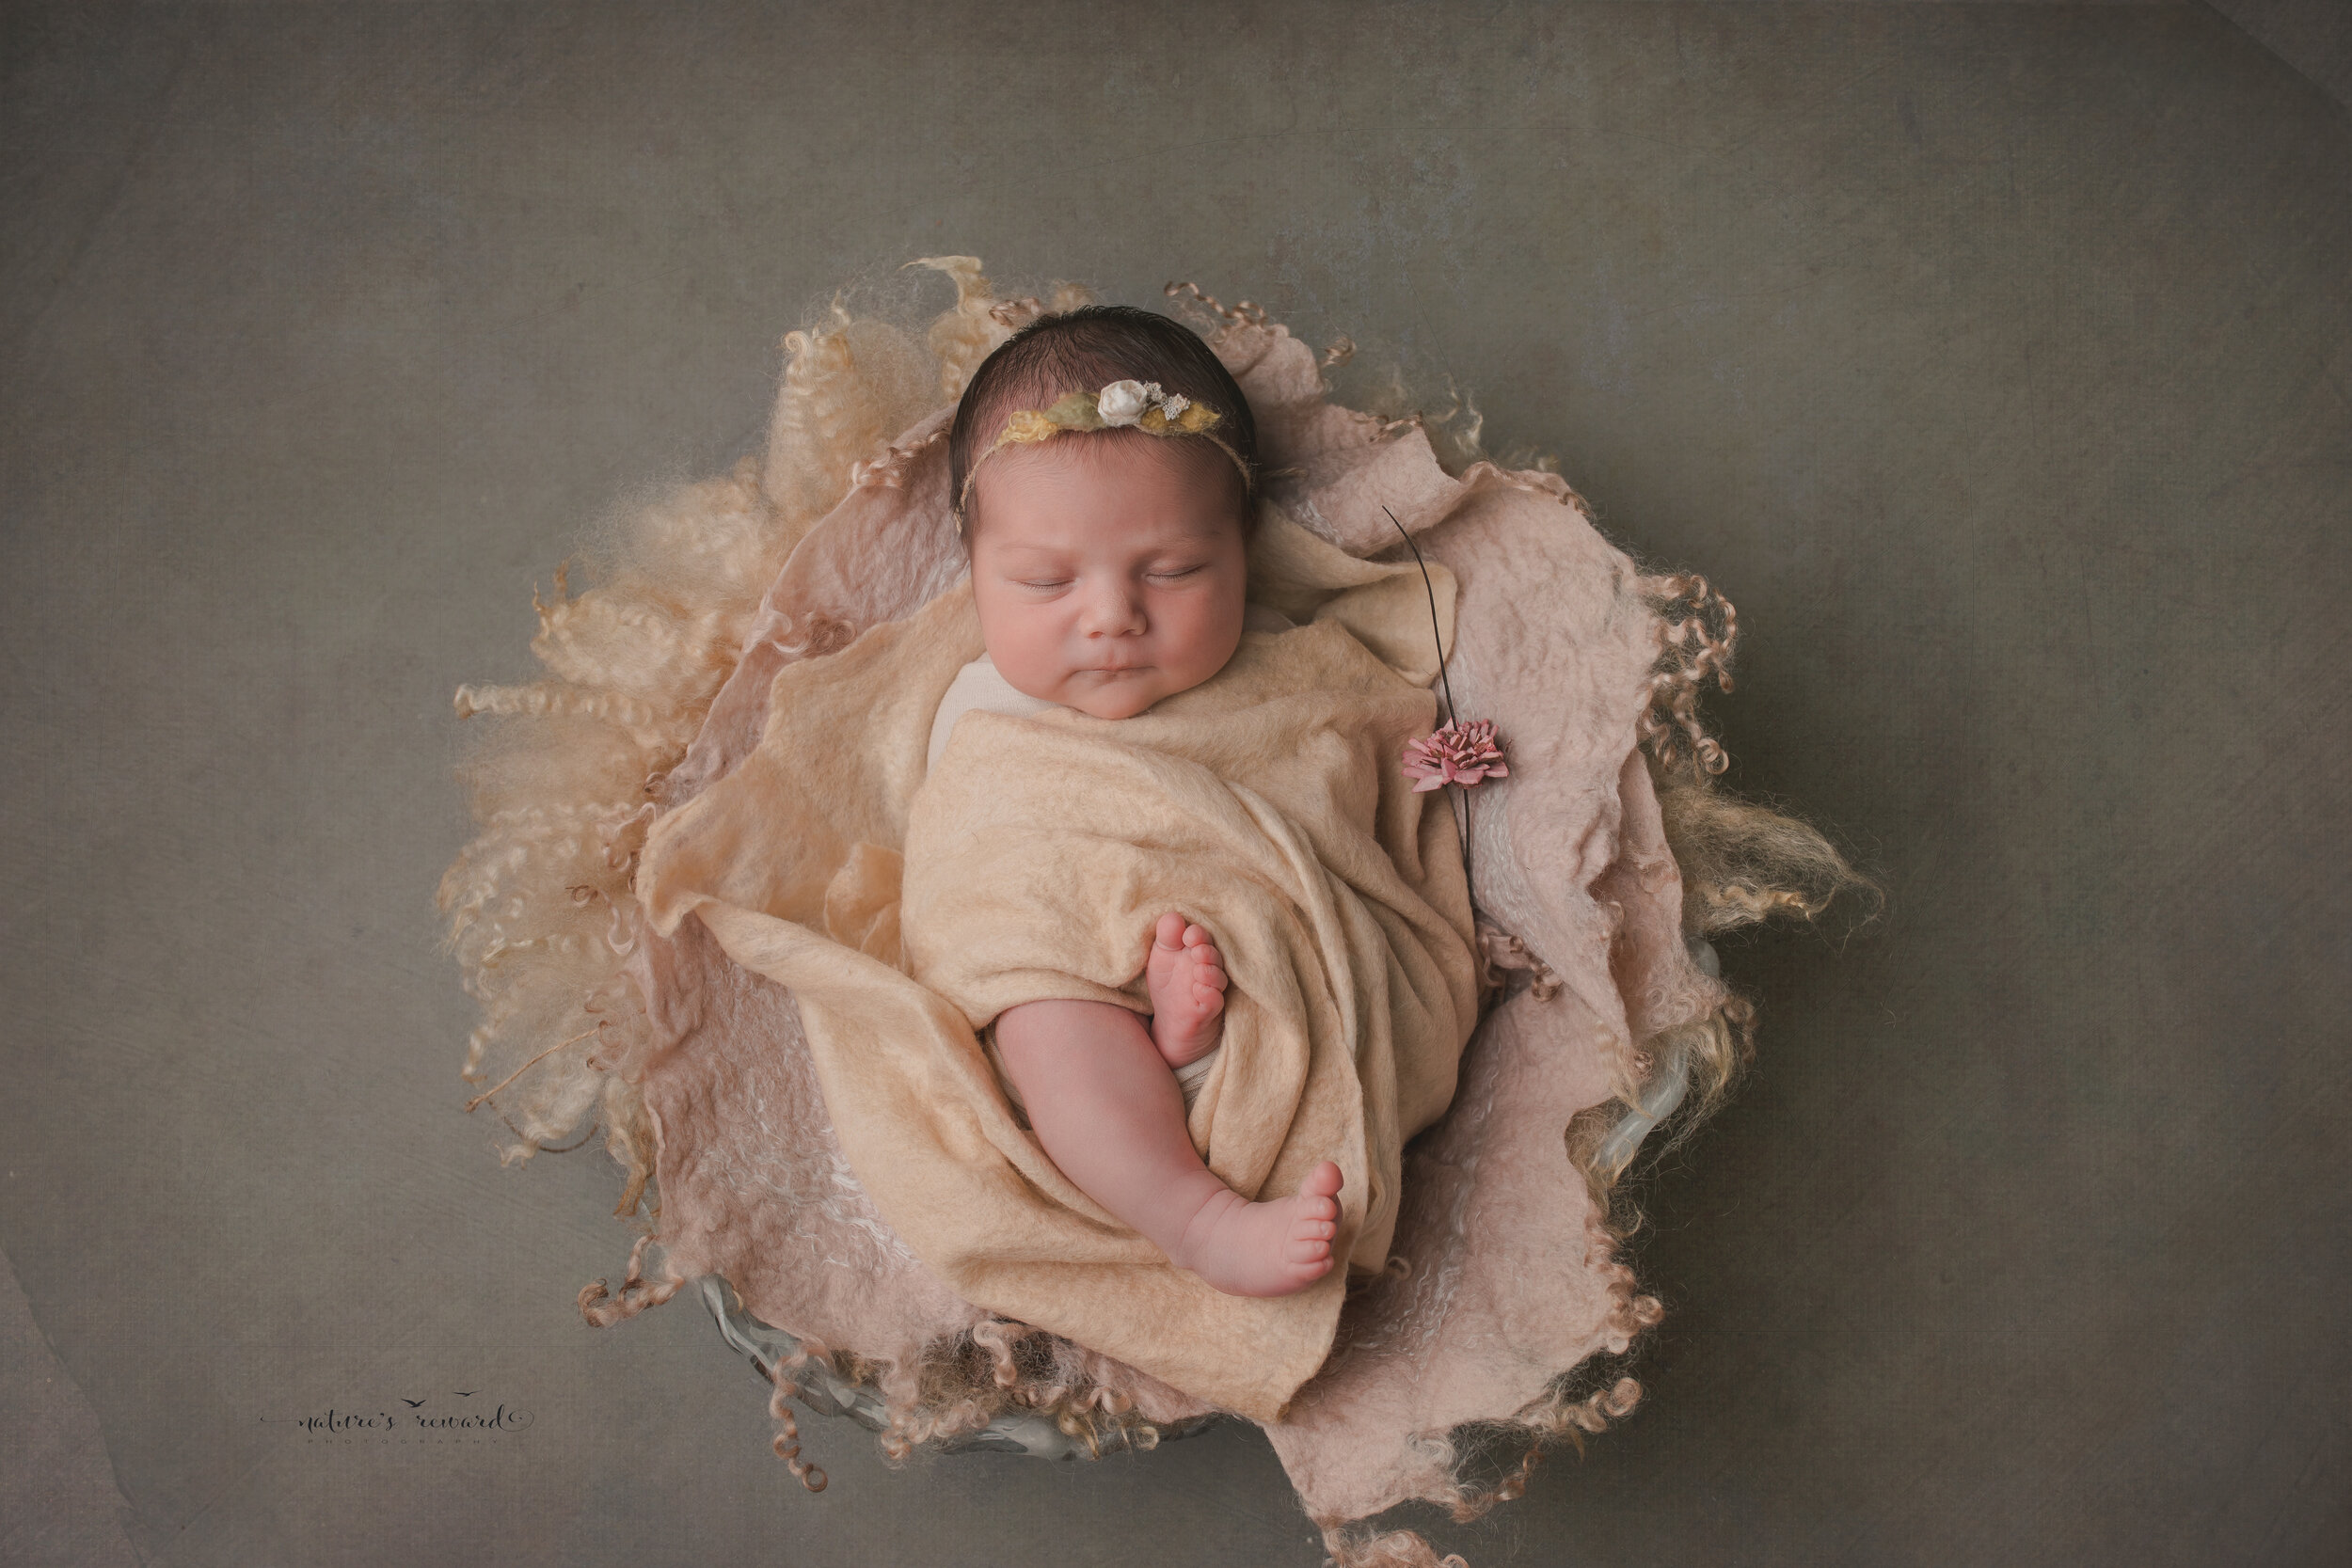 Beautiful newborn baby girl swaddled in lovely layers showing her leg and toes  in this portrait by Nature's Reward Photography